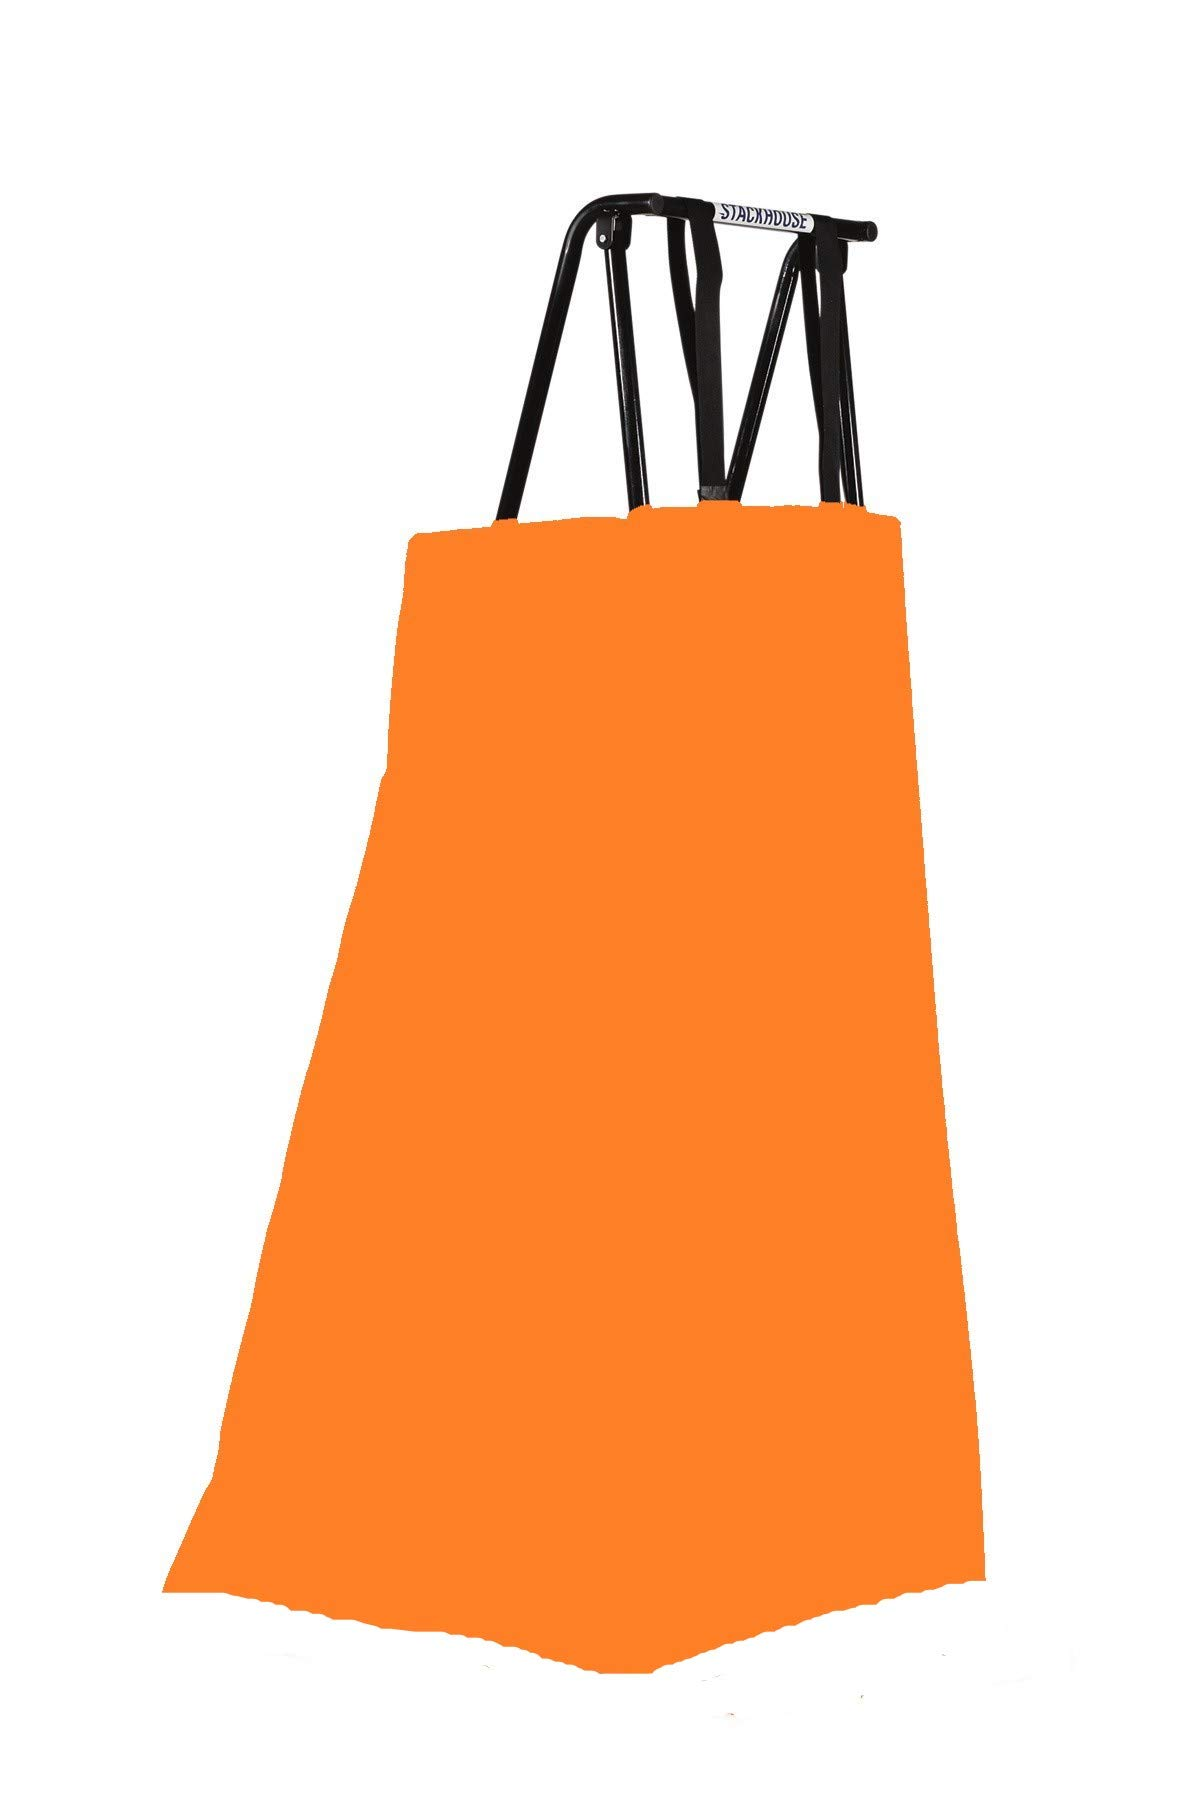 Eastern Atlantic New - Volleyball Referee Stand Protective Padding (Orange)